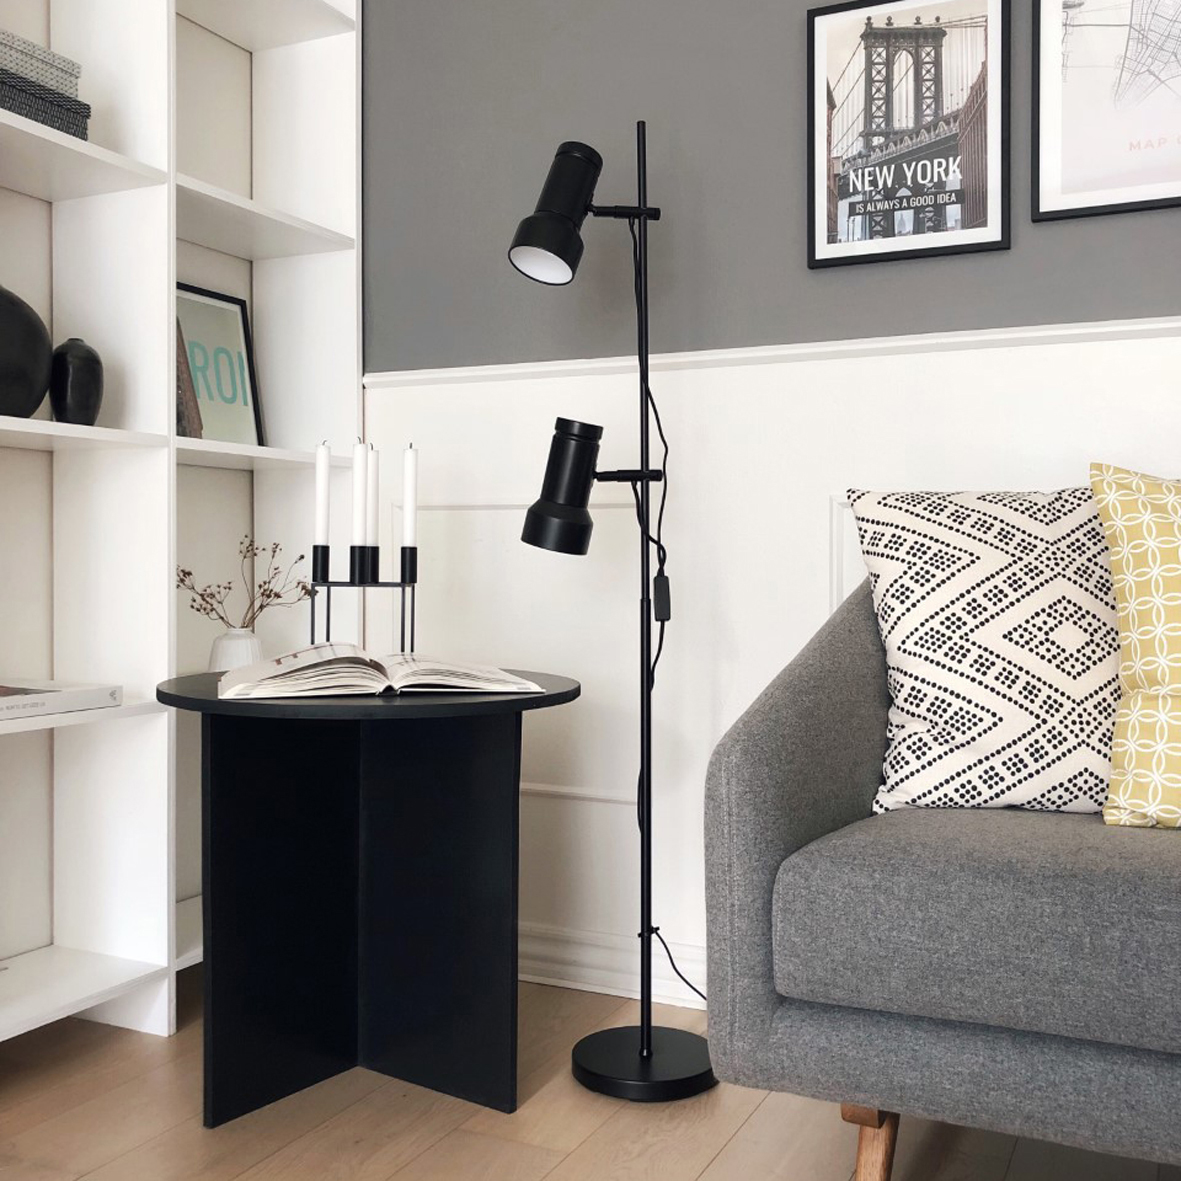 Klassik floor lamp black matt - lifestyle LOB 3346.jpg